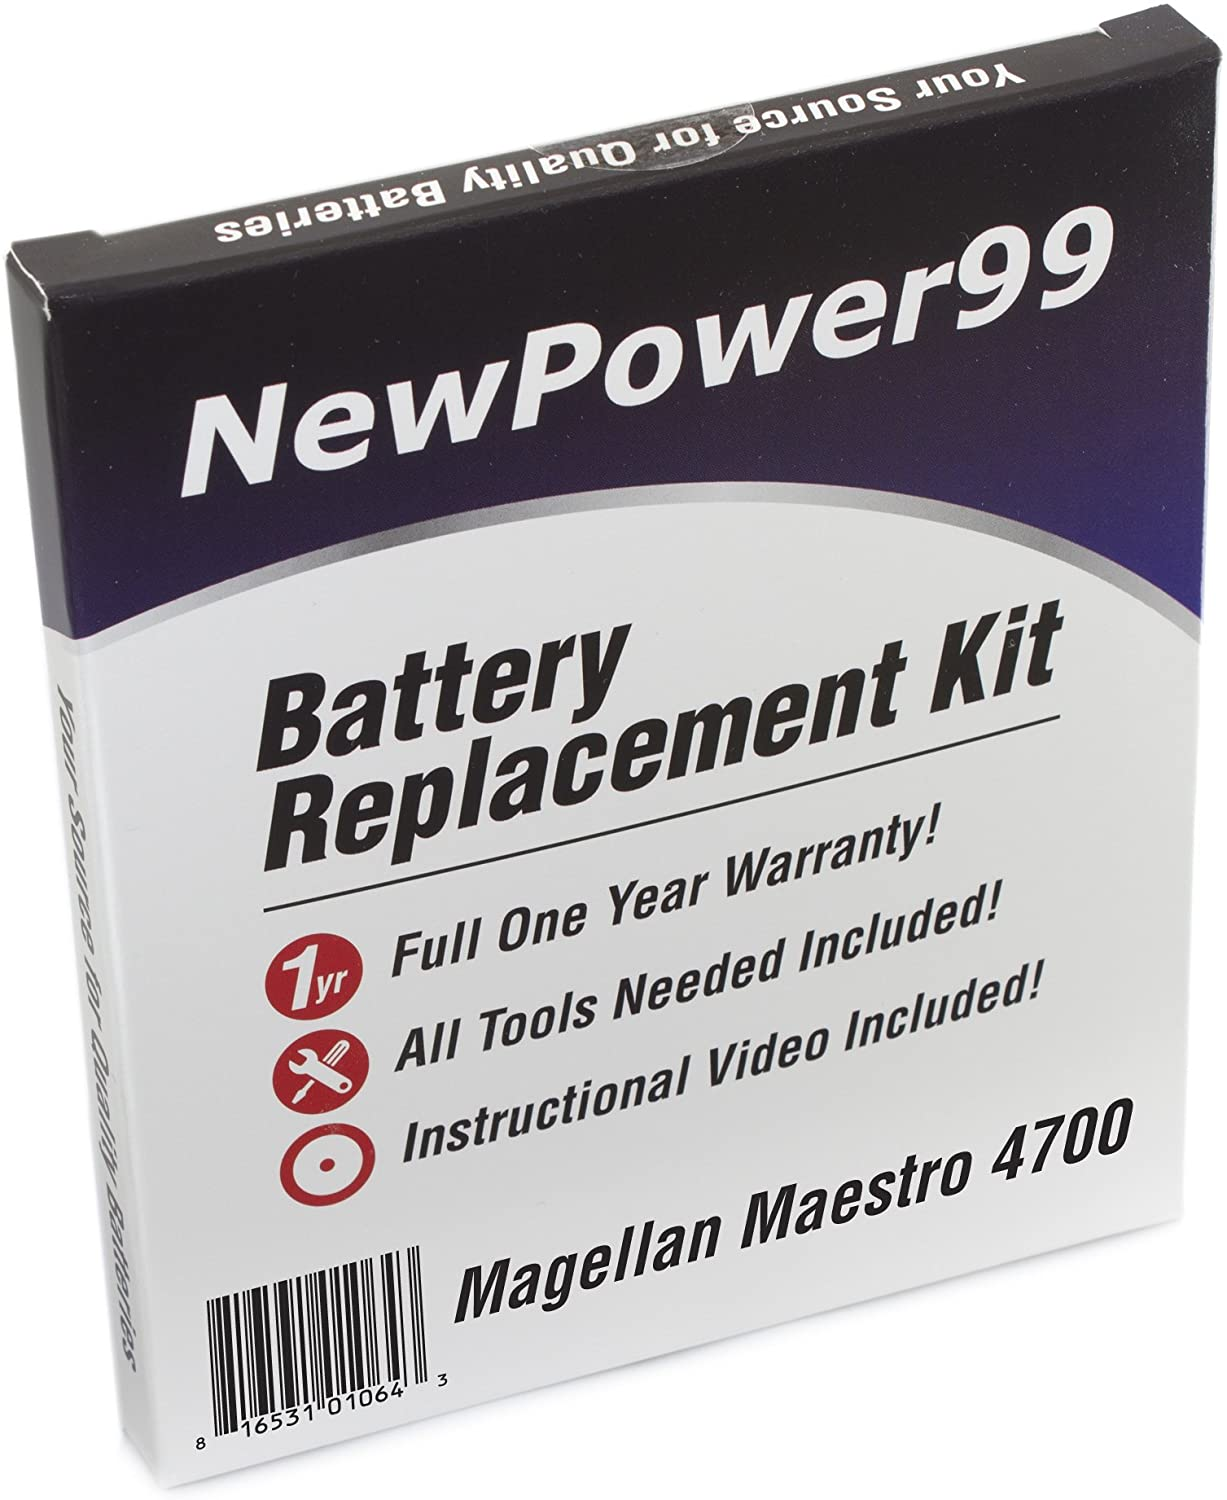 NewPower99 Battery Replacement Kit with Battery, Video Instructions and Tools for Magellan Maestro 4700